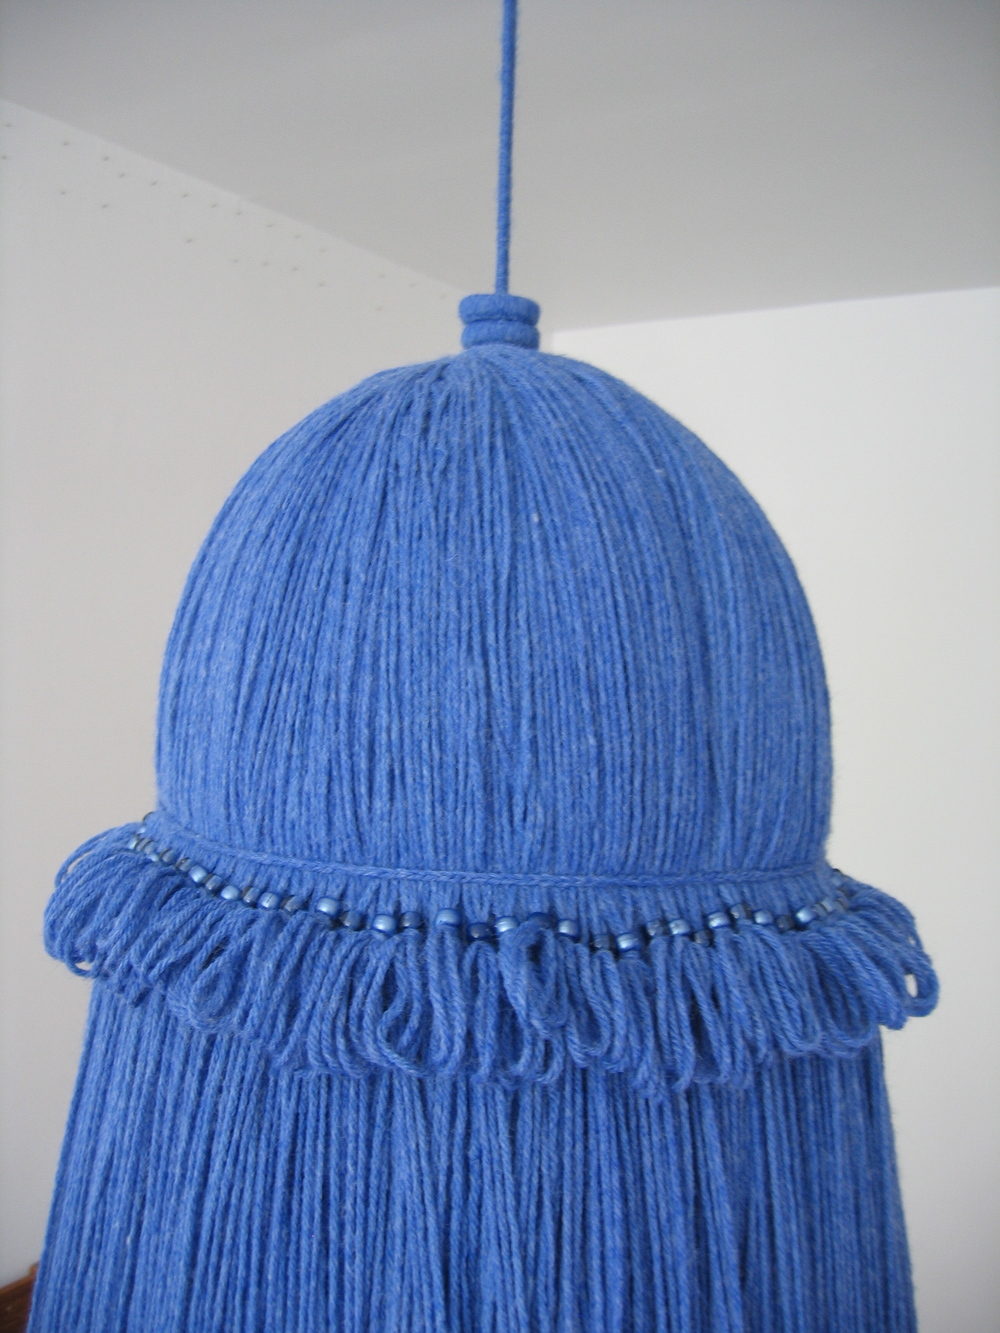 Tassels, 2006, Acrylic yarn and beads with nylon rope, 3 pieces each around 1.5' x 7' (Detail)